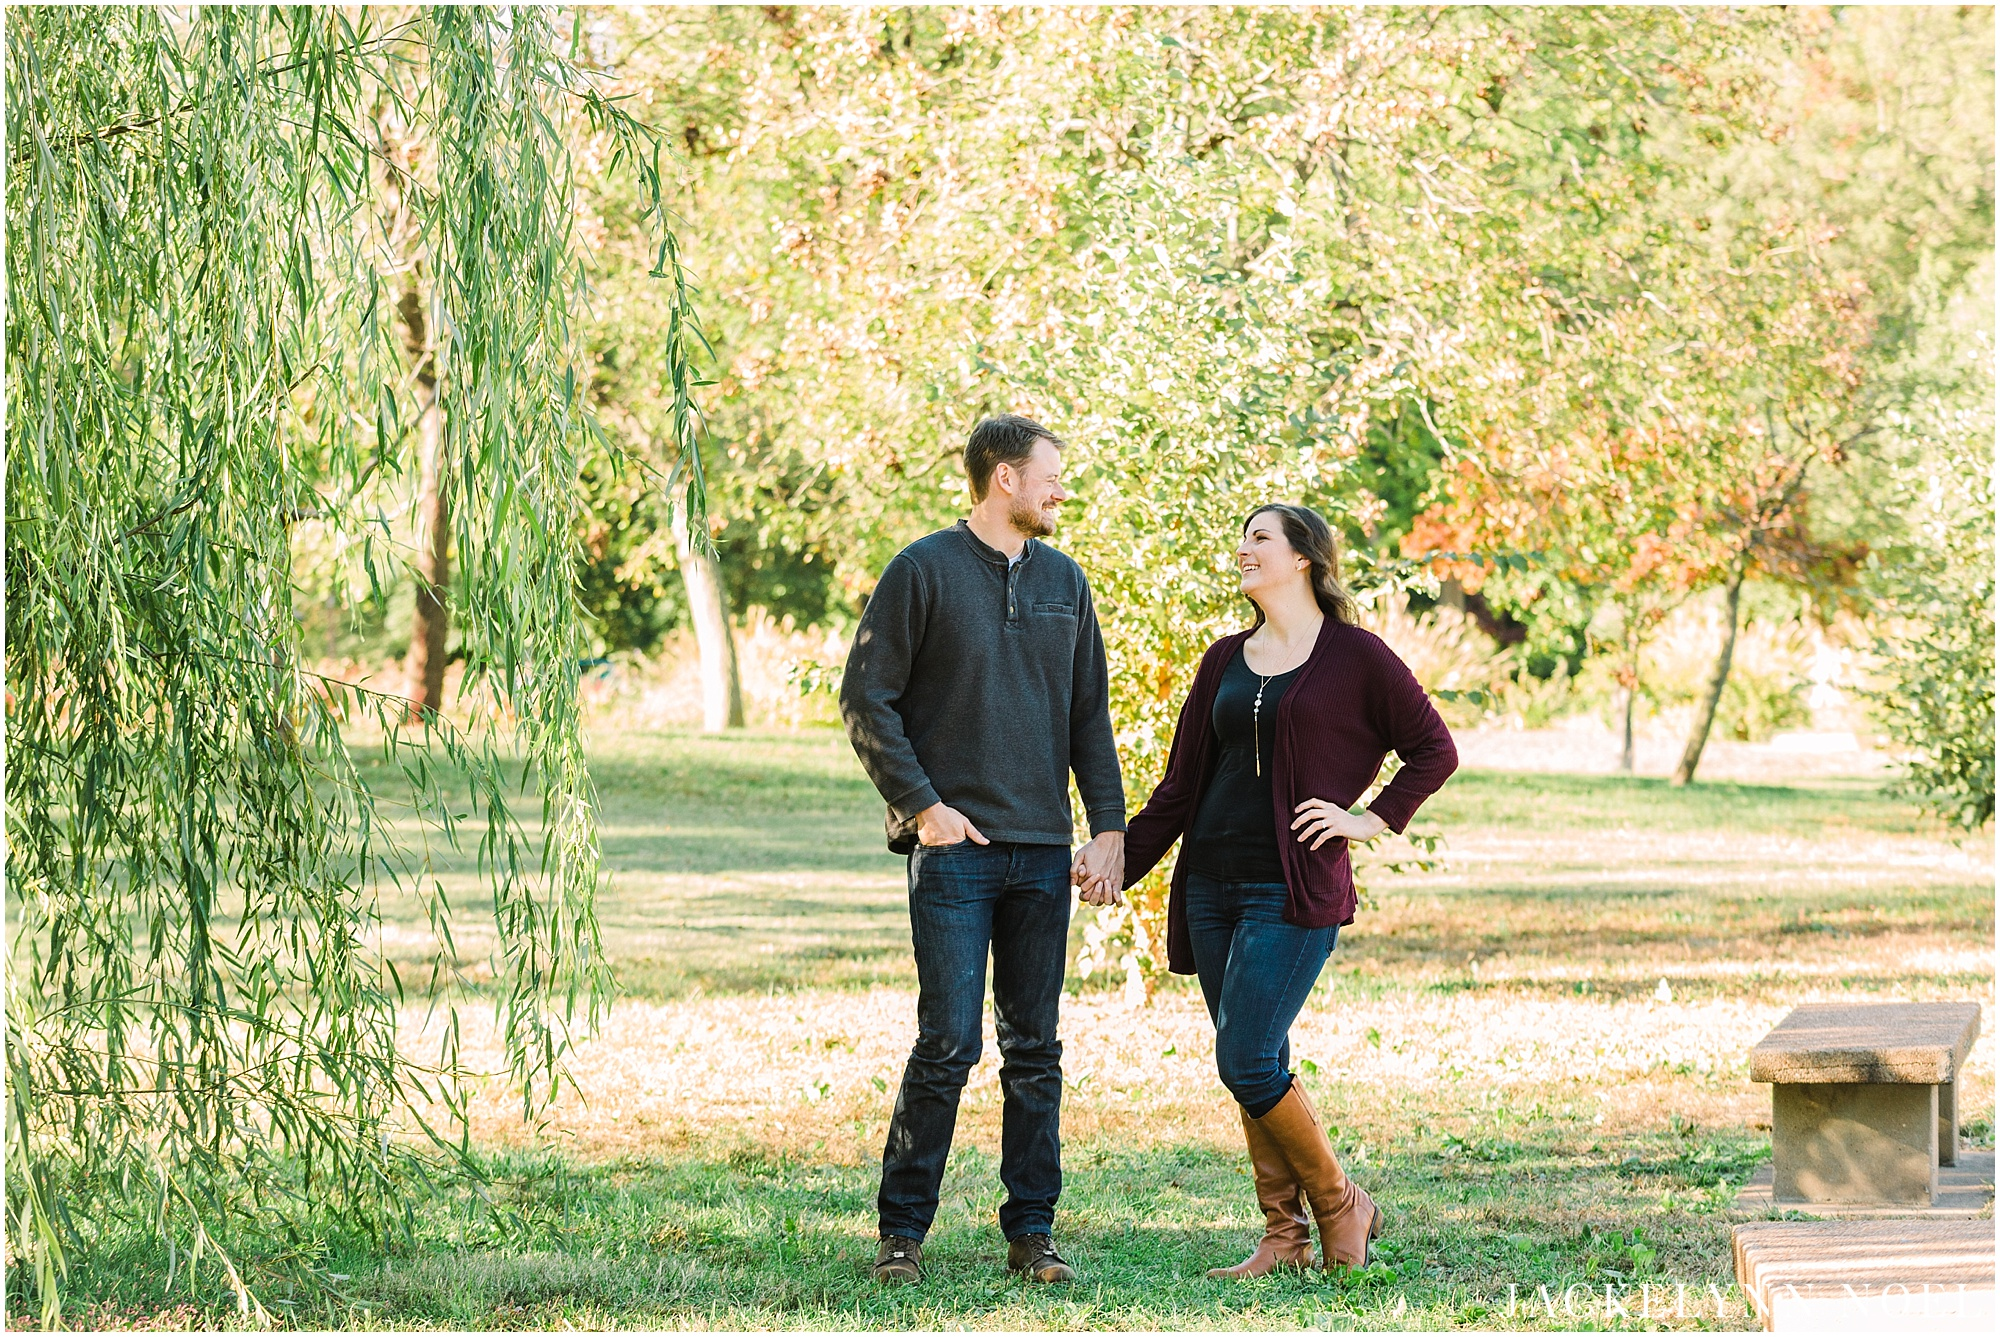 Danika & Joe engagement session at Tower Grove Park by Jackelynn Noel Photography